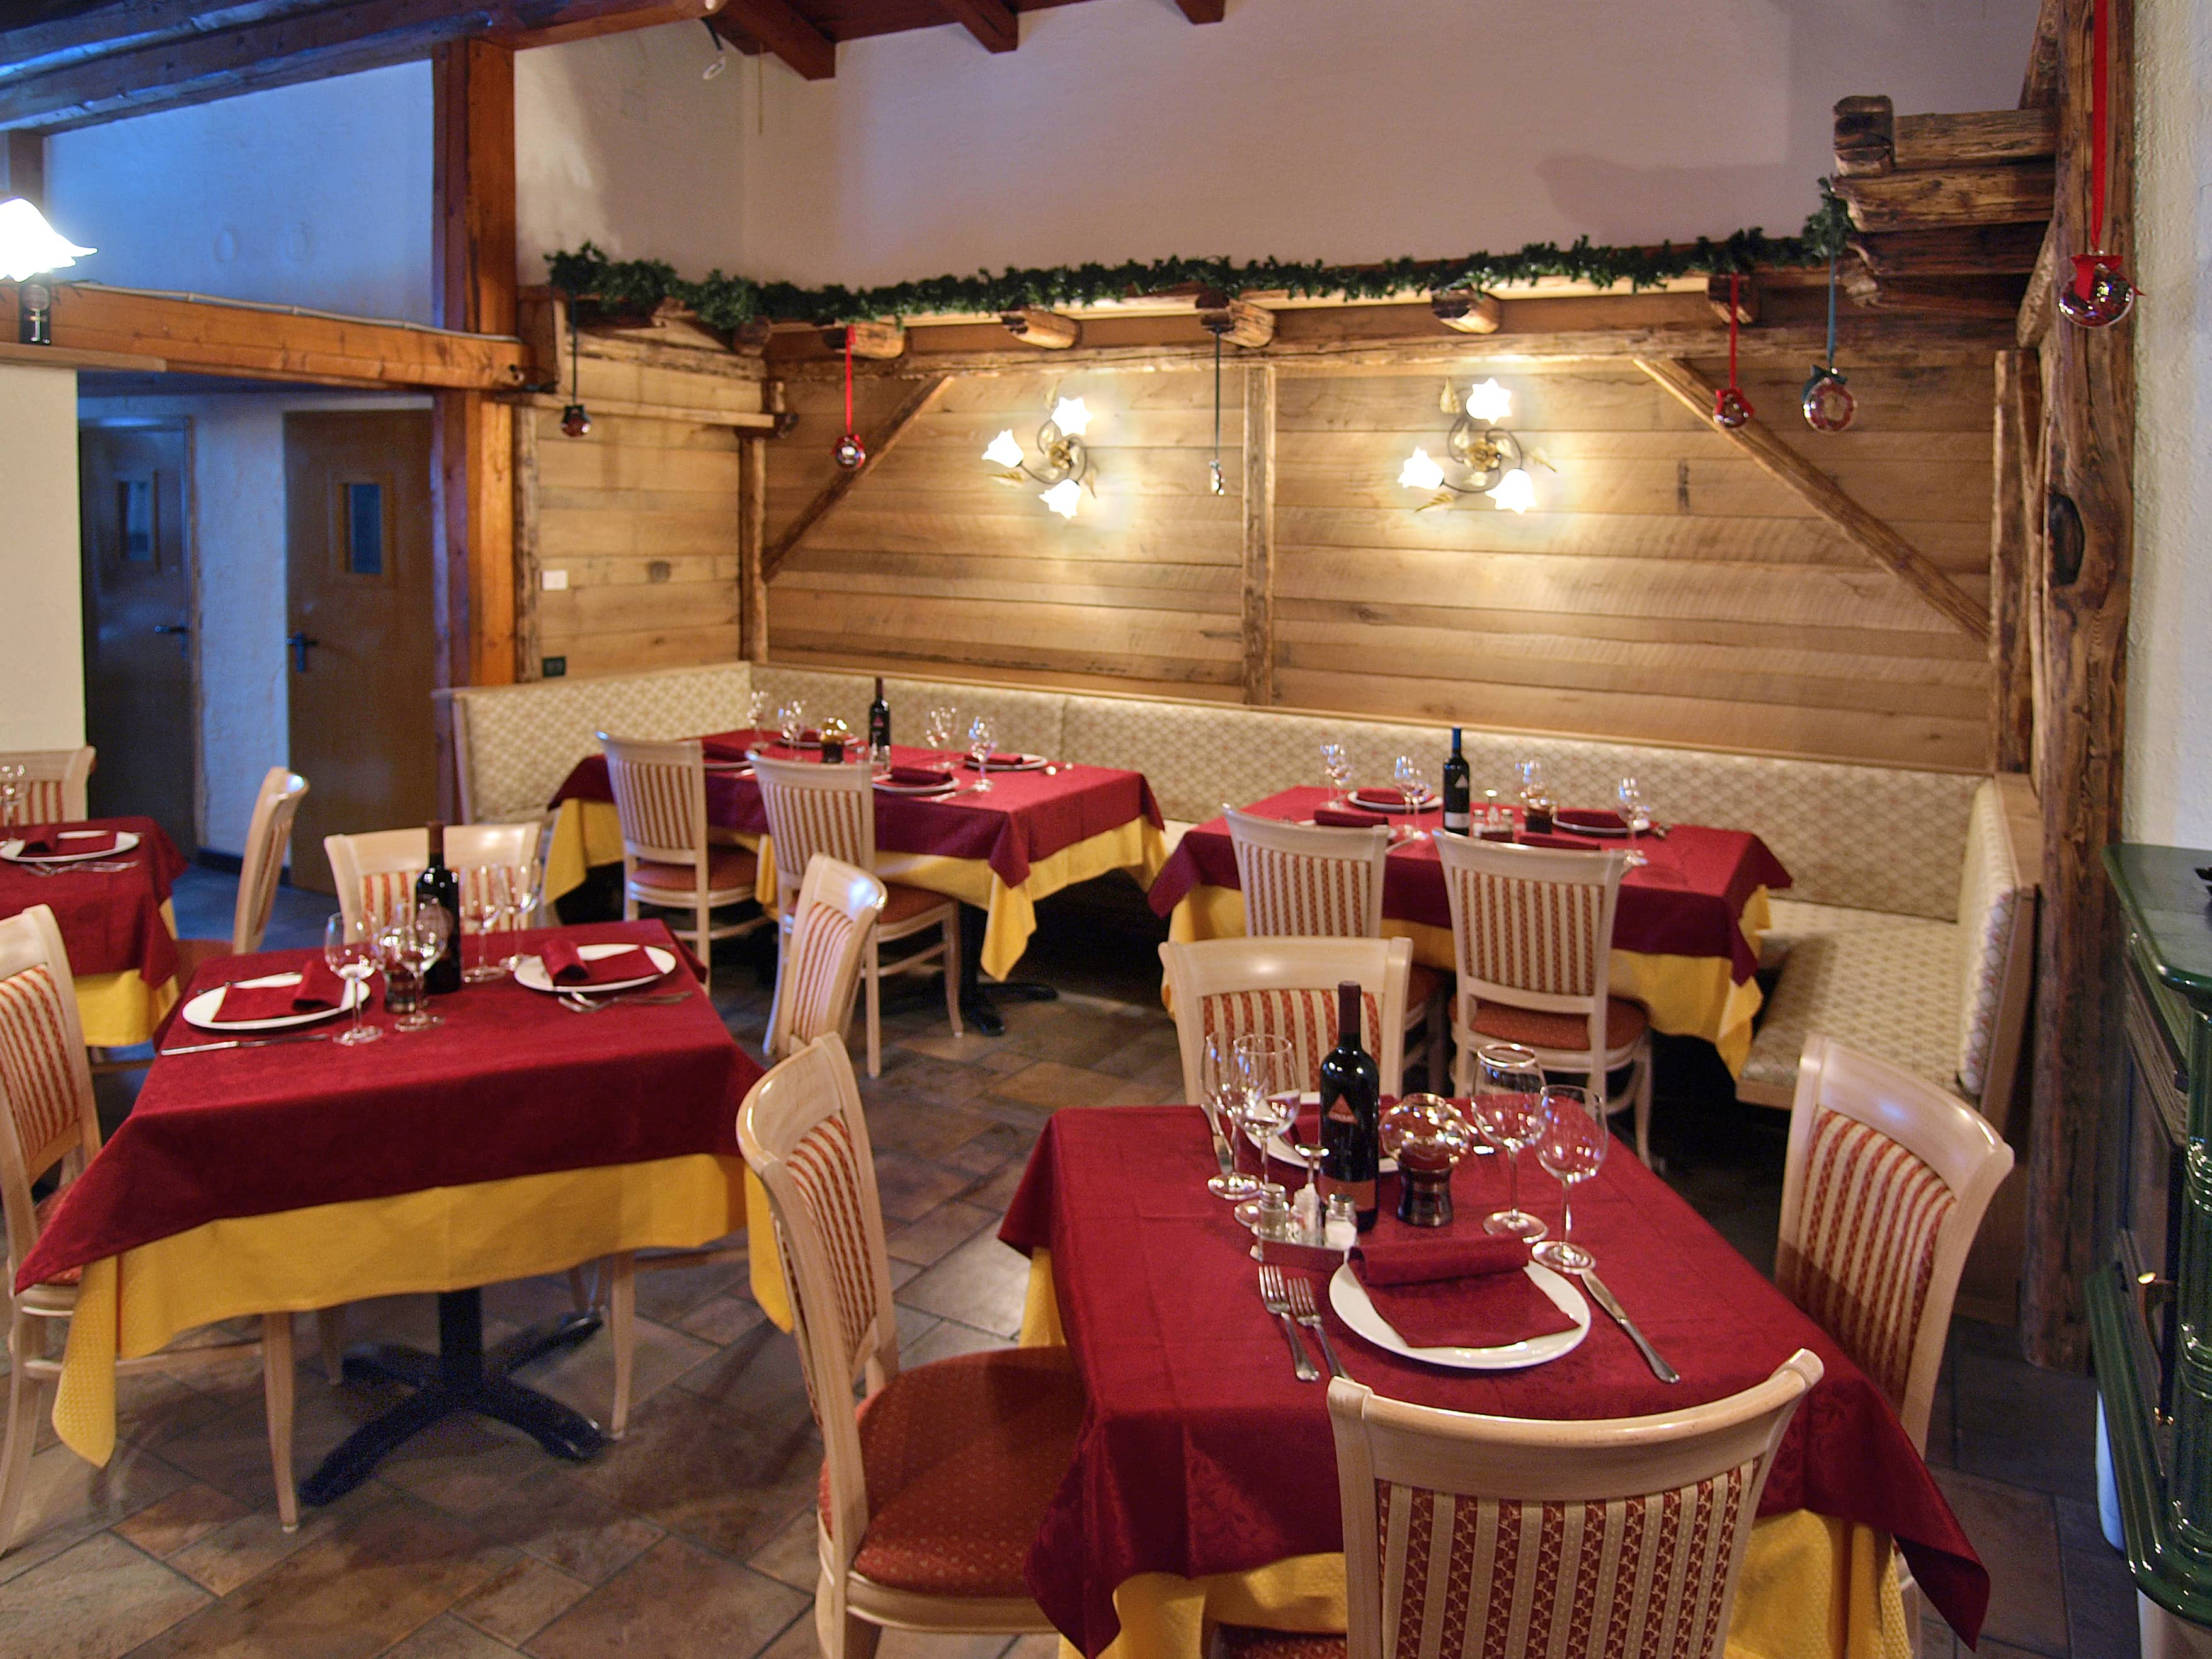 Val di Sole skipass included: Hotel Selva 3*** HB 7